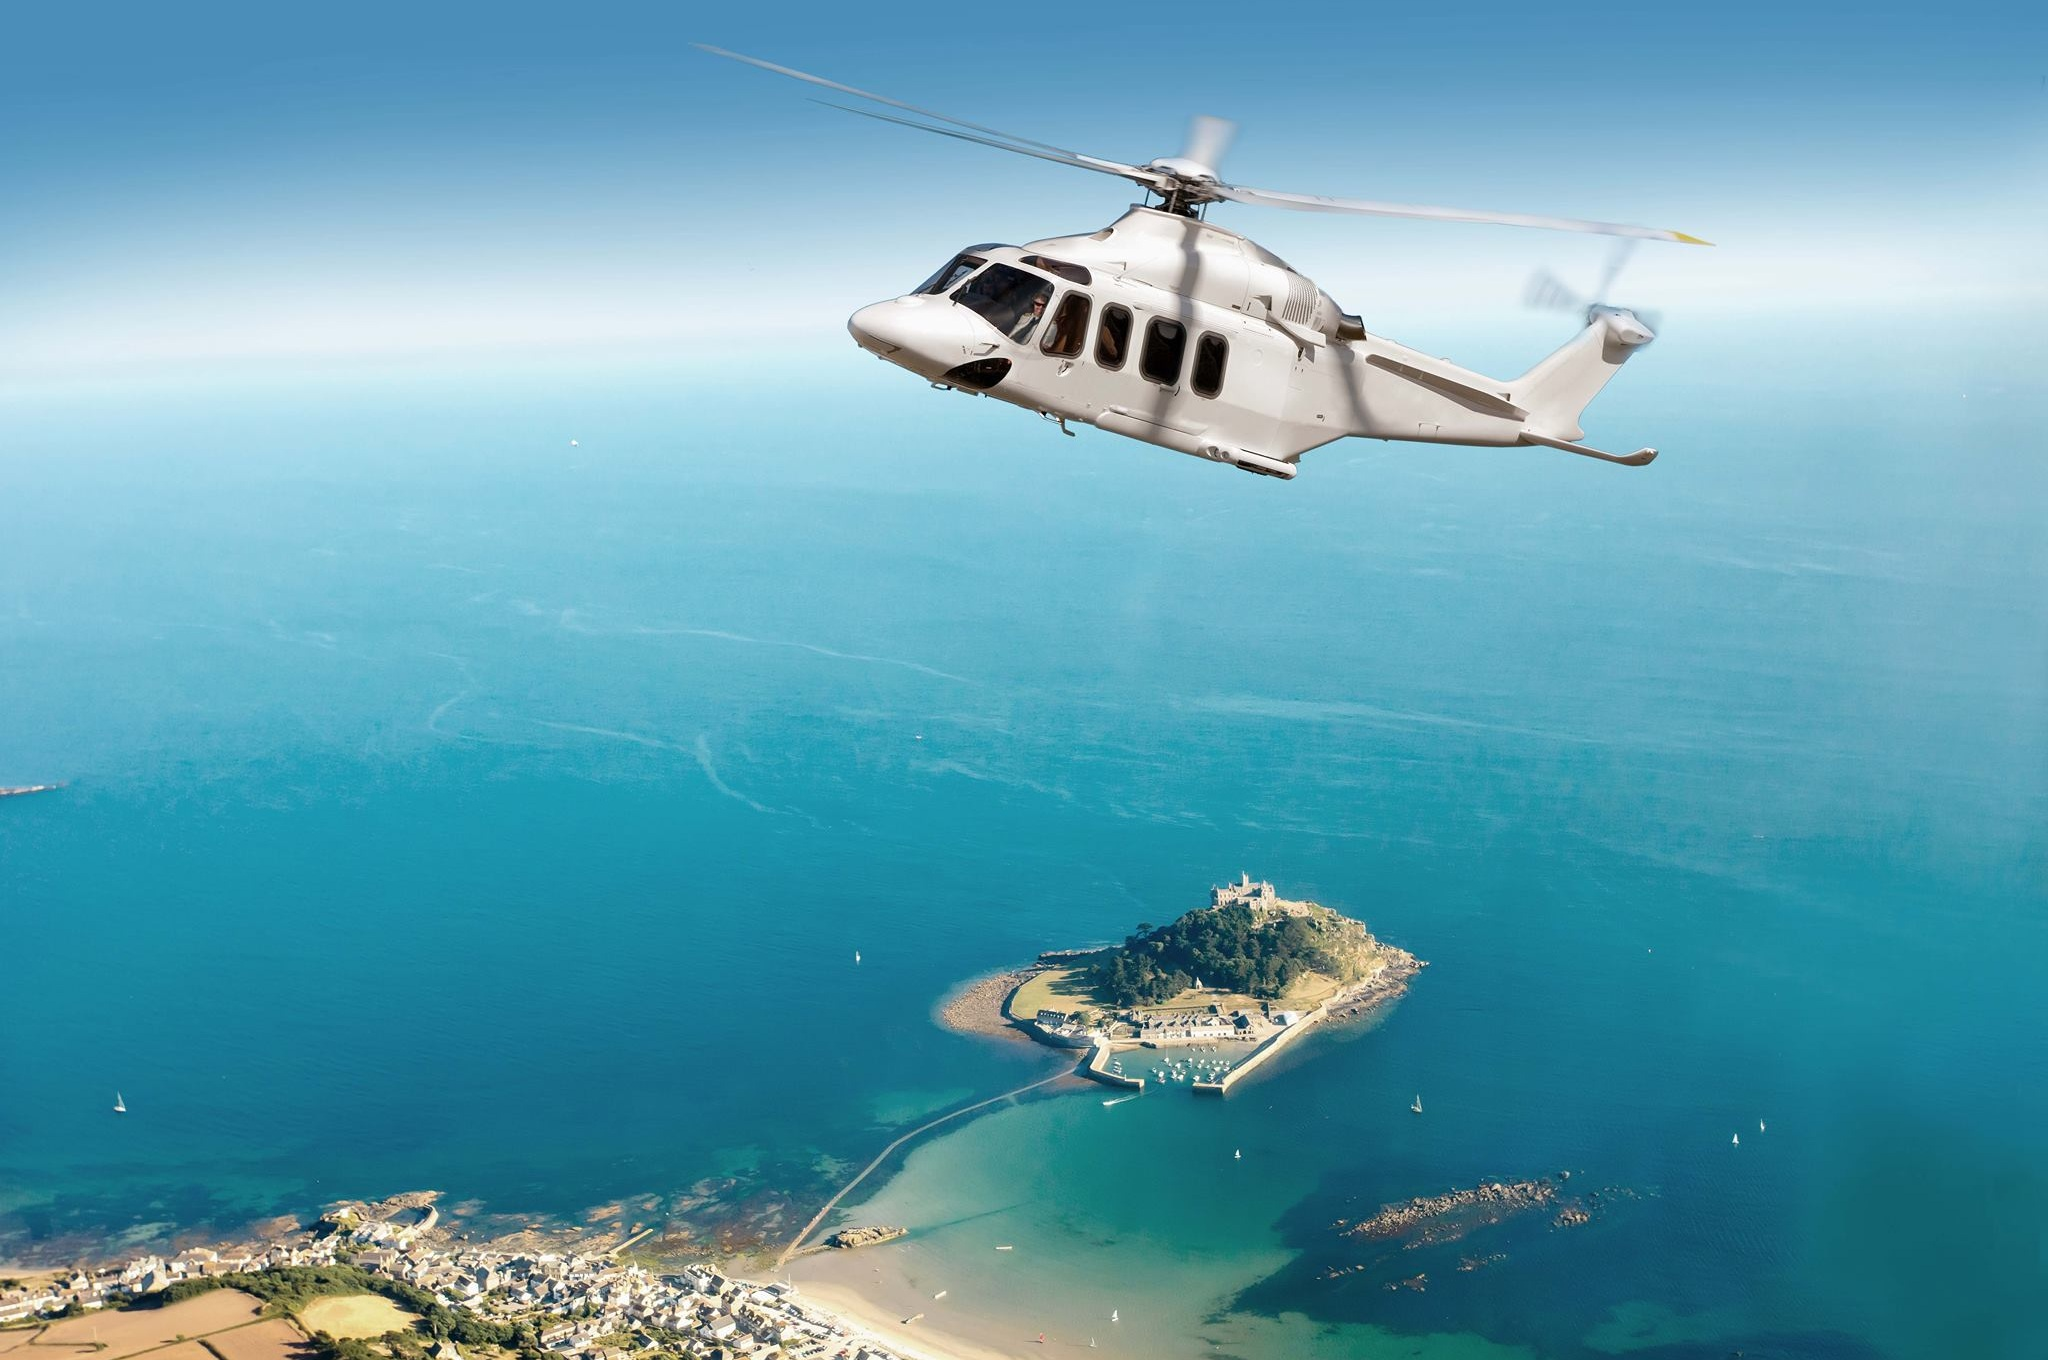 The new helicopter service is expected to launch in March 2020 with bookings set to go live in early summer 2019. Image courtesy of Penzance Heliport Ltd.